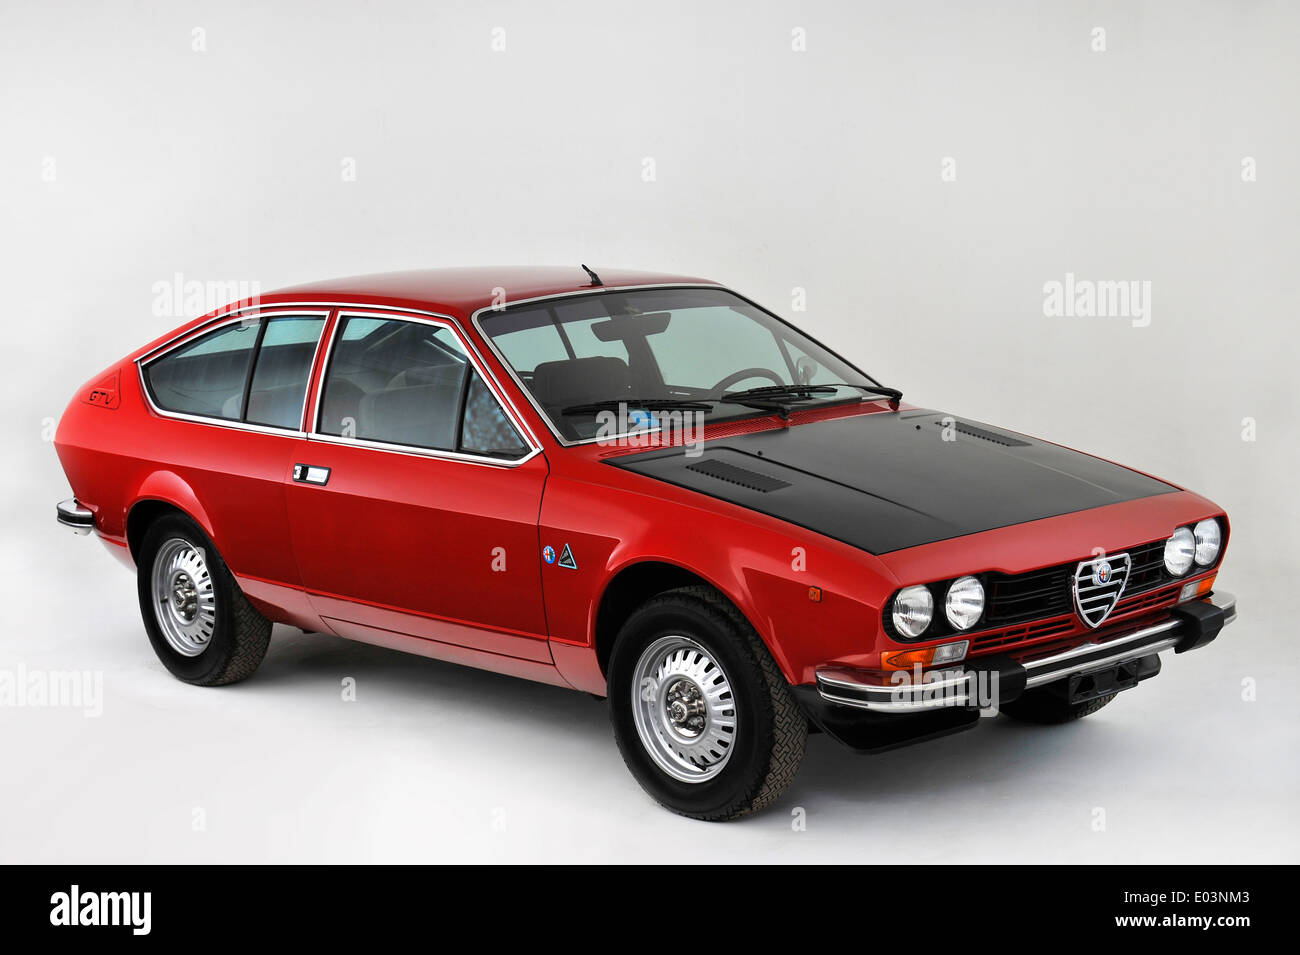 1981 Alfa Romeo Alfetta Gtv Stock Photo Alamy